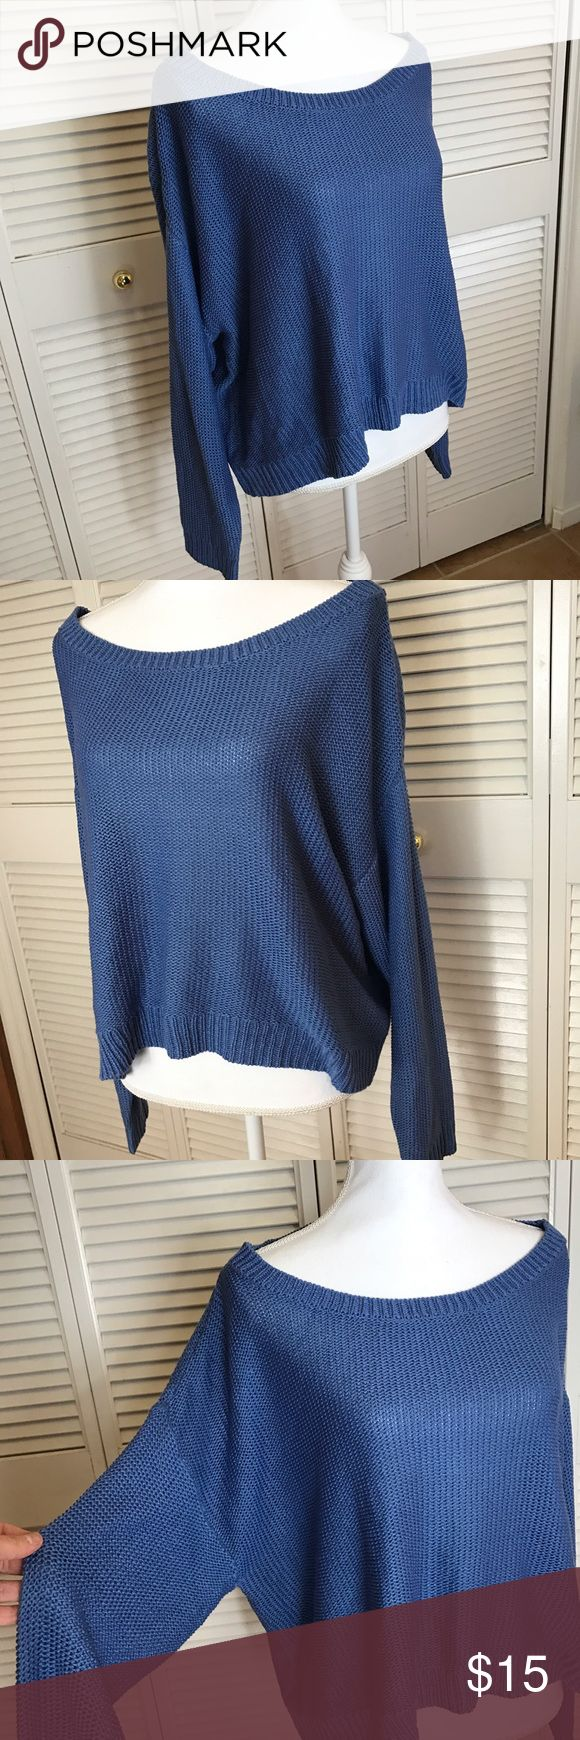 Torrid loose knit sweater Perfect condition loose knit sweater. Super comfy! torrid Sweaters Crew & Scoop Necks